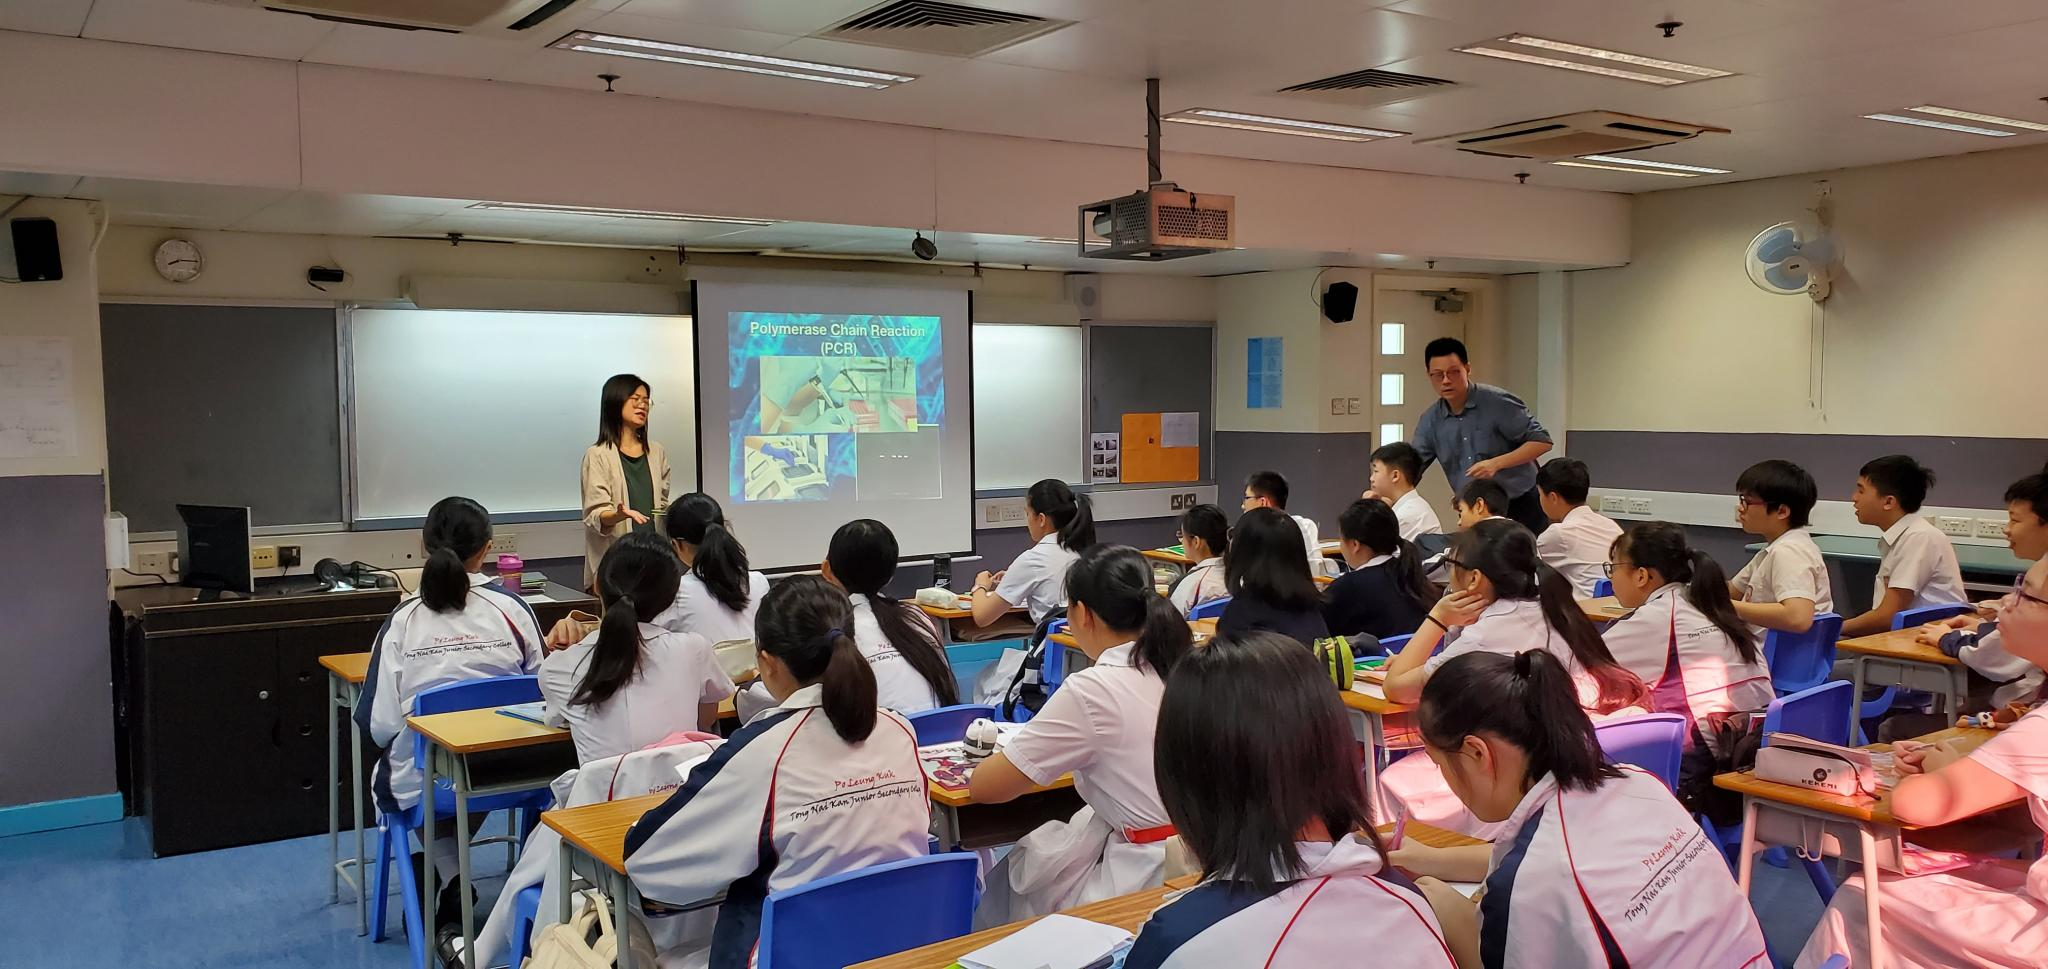 Dr. CHAN is introducing PCR technique to students.